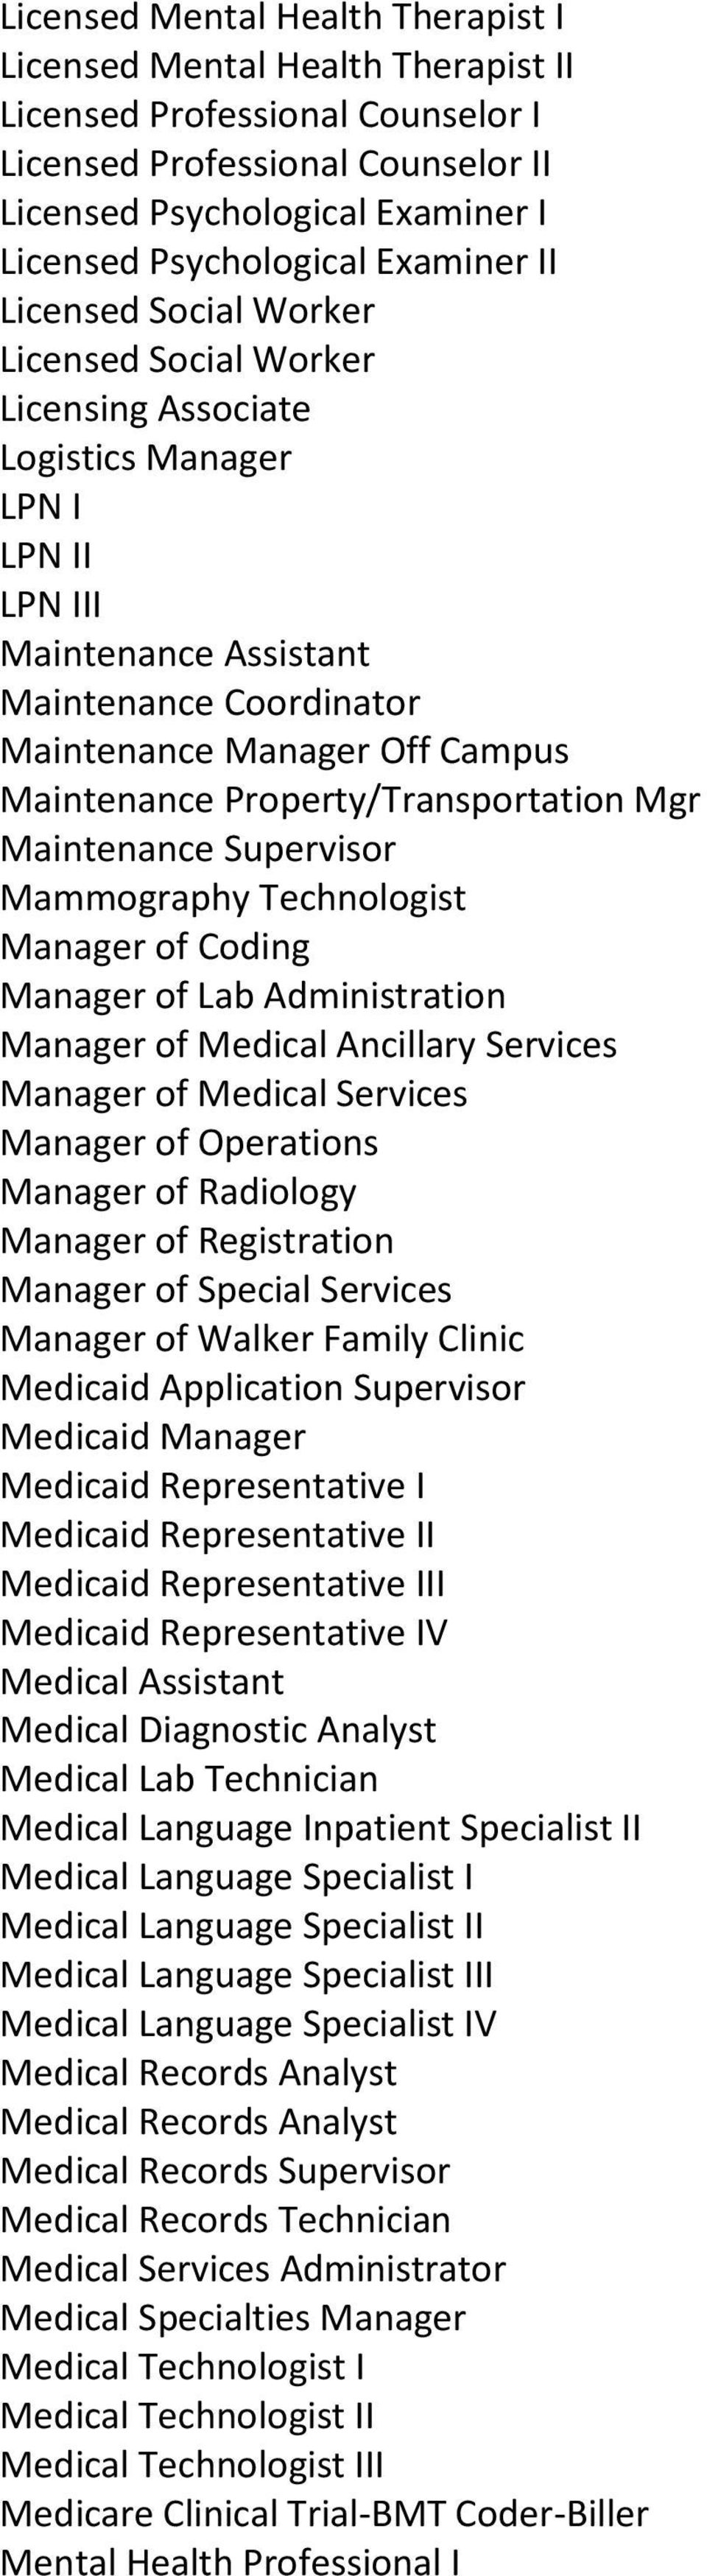 Maintenance Property/Transportation Mgr Maintenance Supervisor Mammography Technologist Manager of Coding Manager of Lab Administration Manager of Medical Ancillary Services Manager of Medical